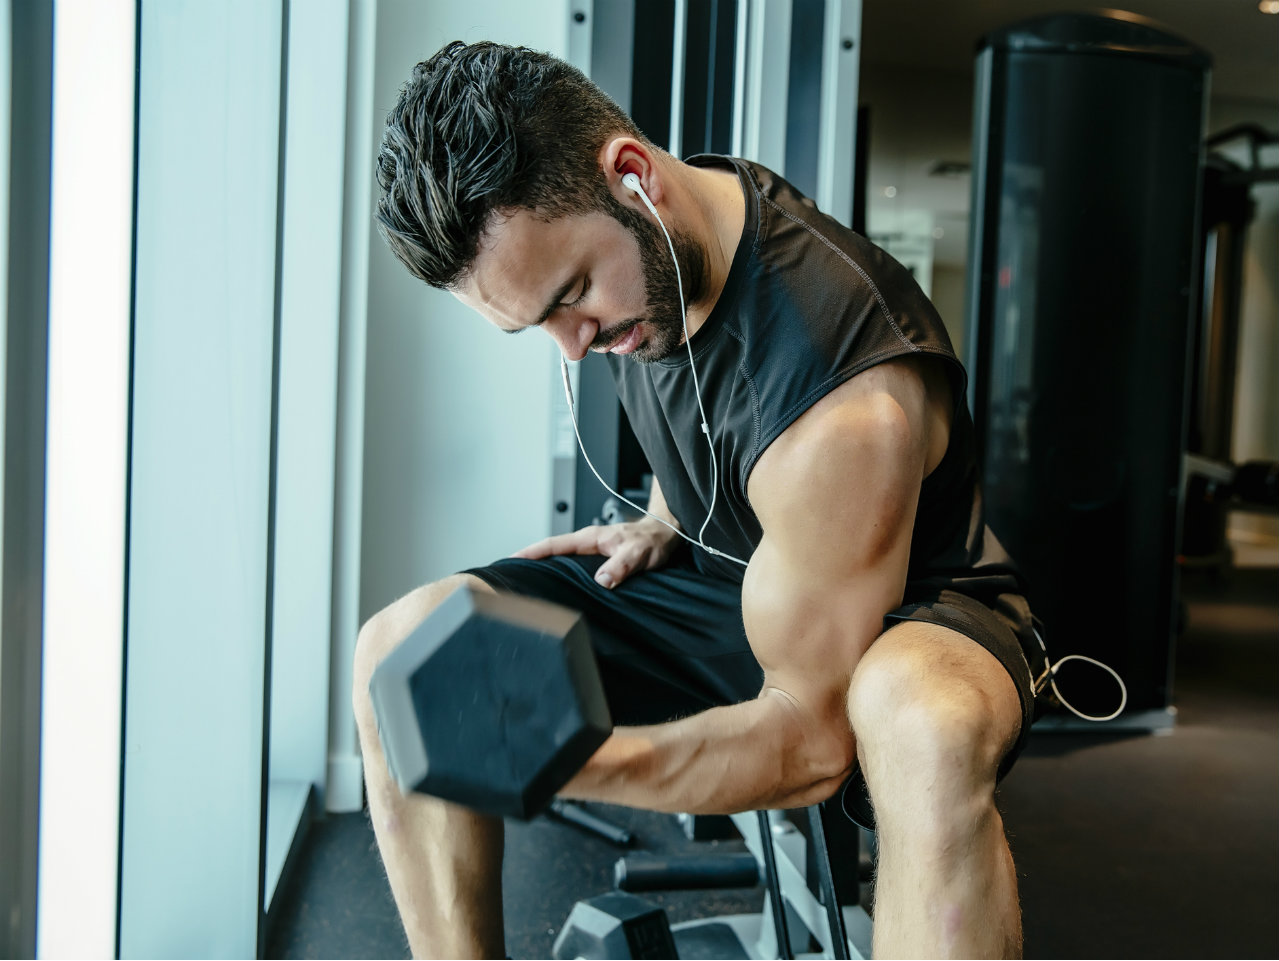 10 most interesting facts about muscles